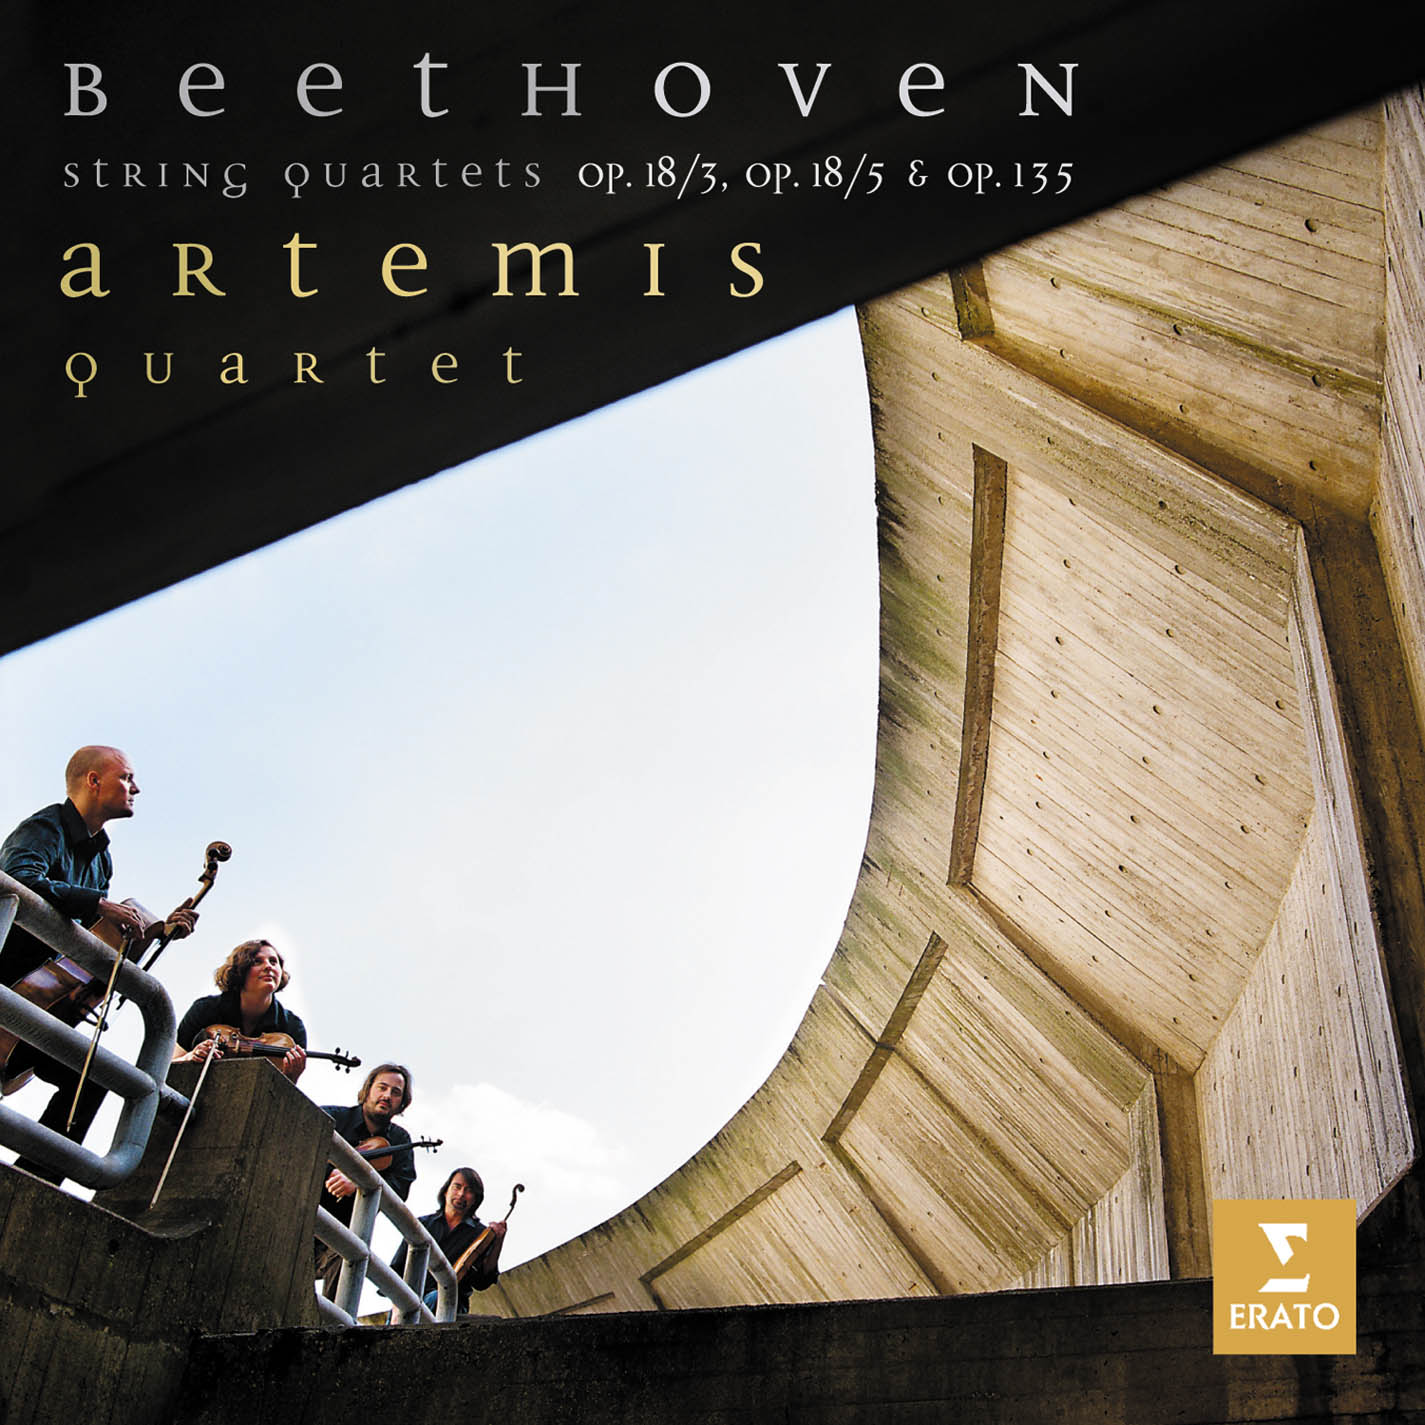 Beethoven String Quartets Op. 18/5, 18/3, 135/9